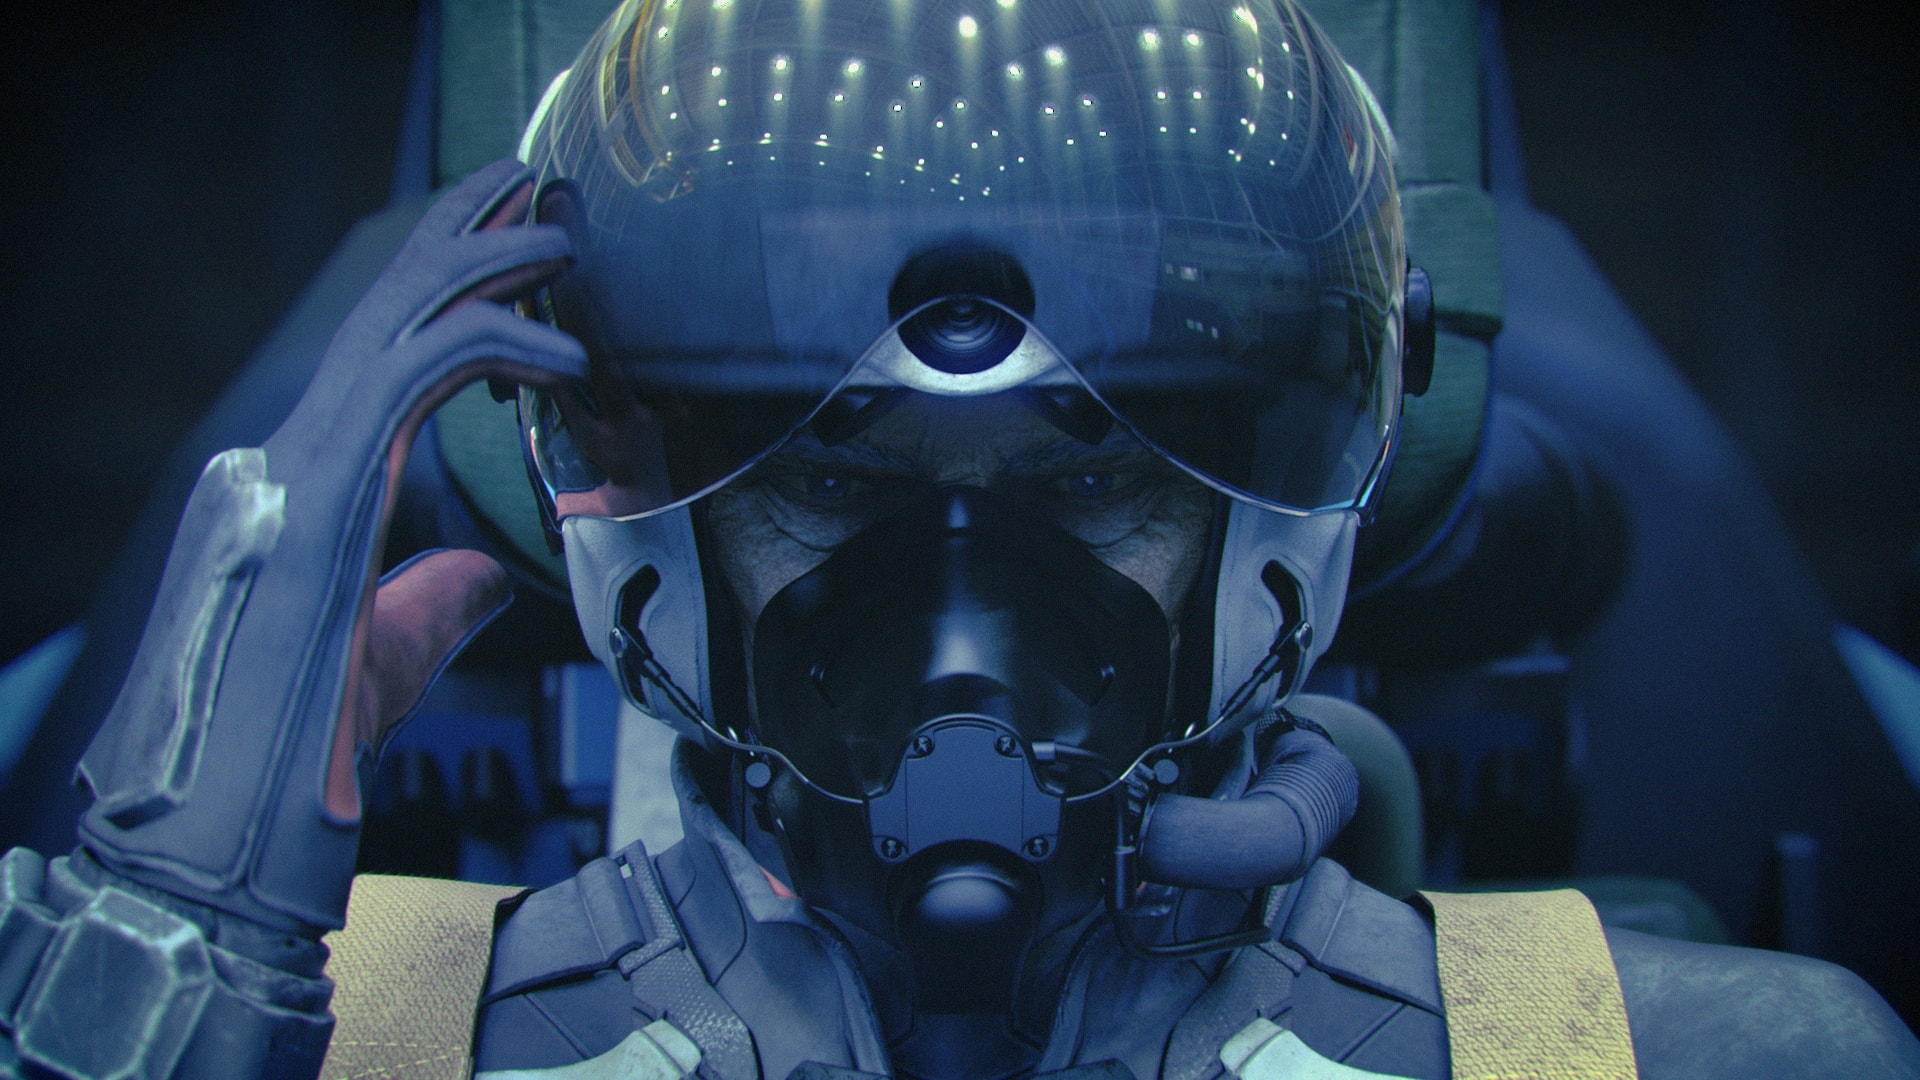 Check out 30 minutes of Ace Combat 7: Skies Unknown gameplay